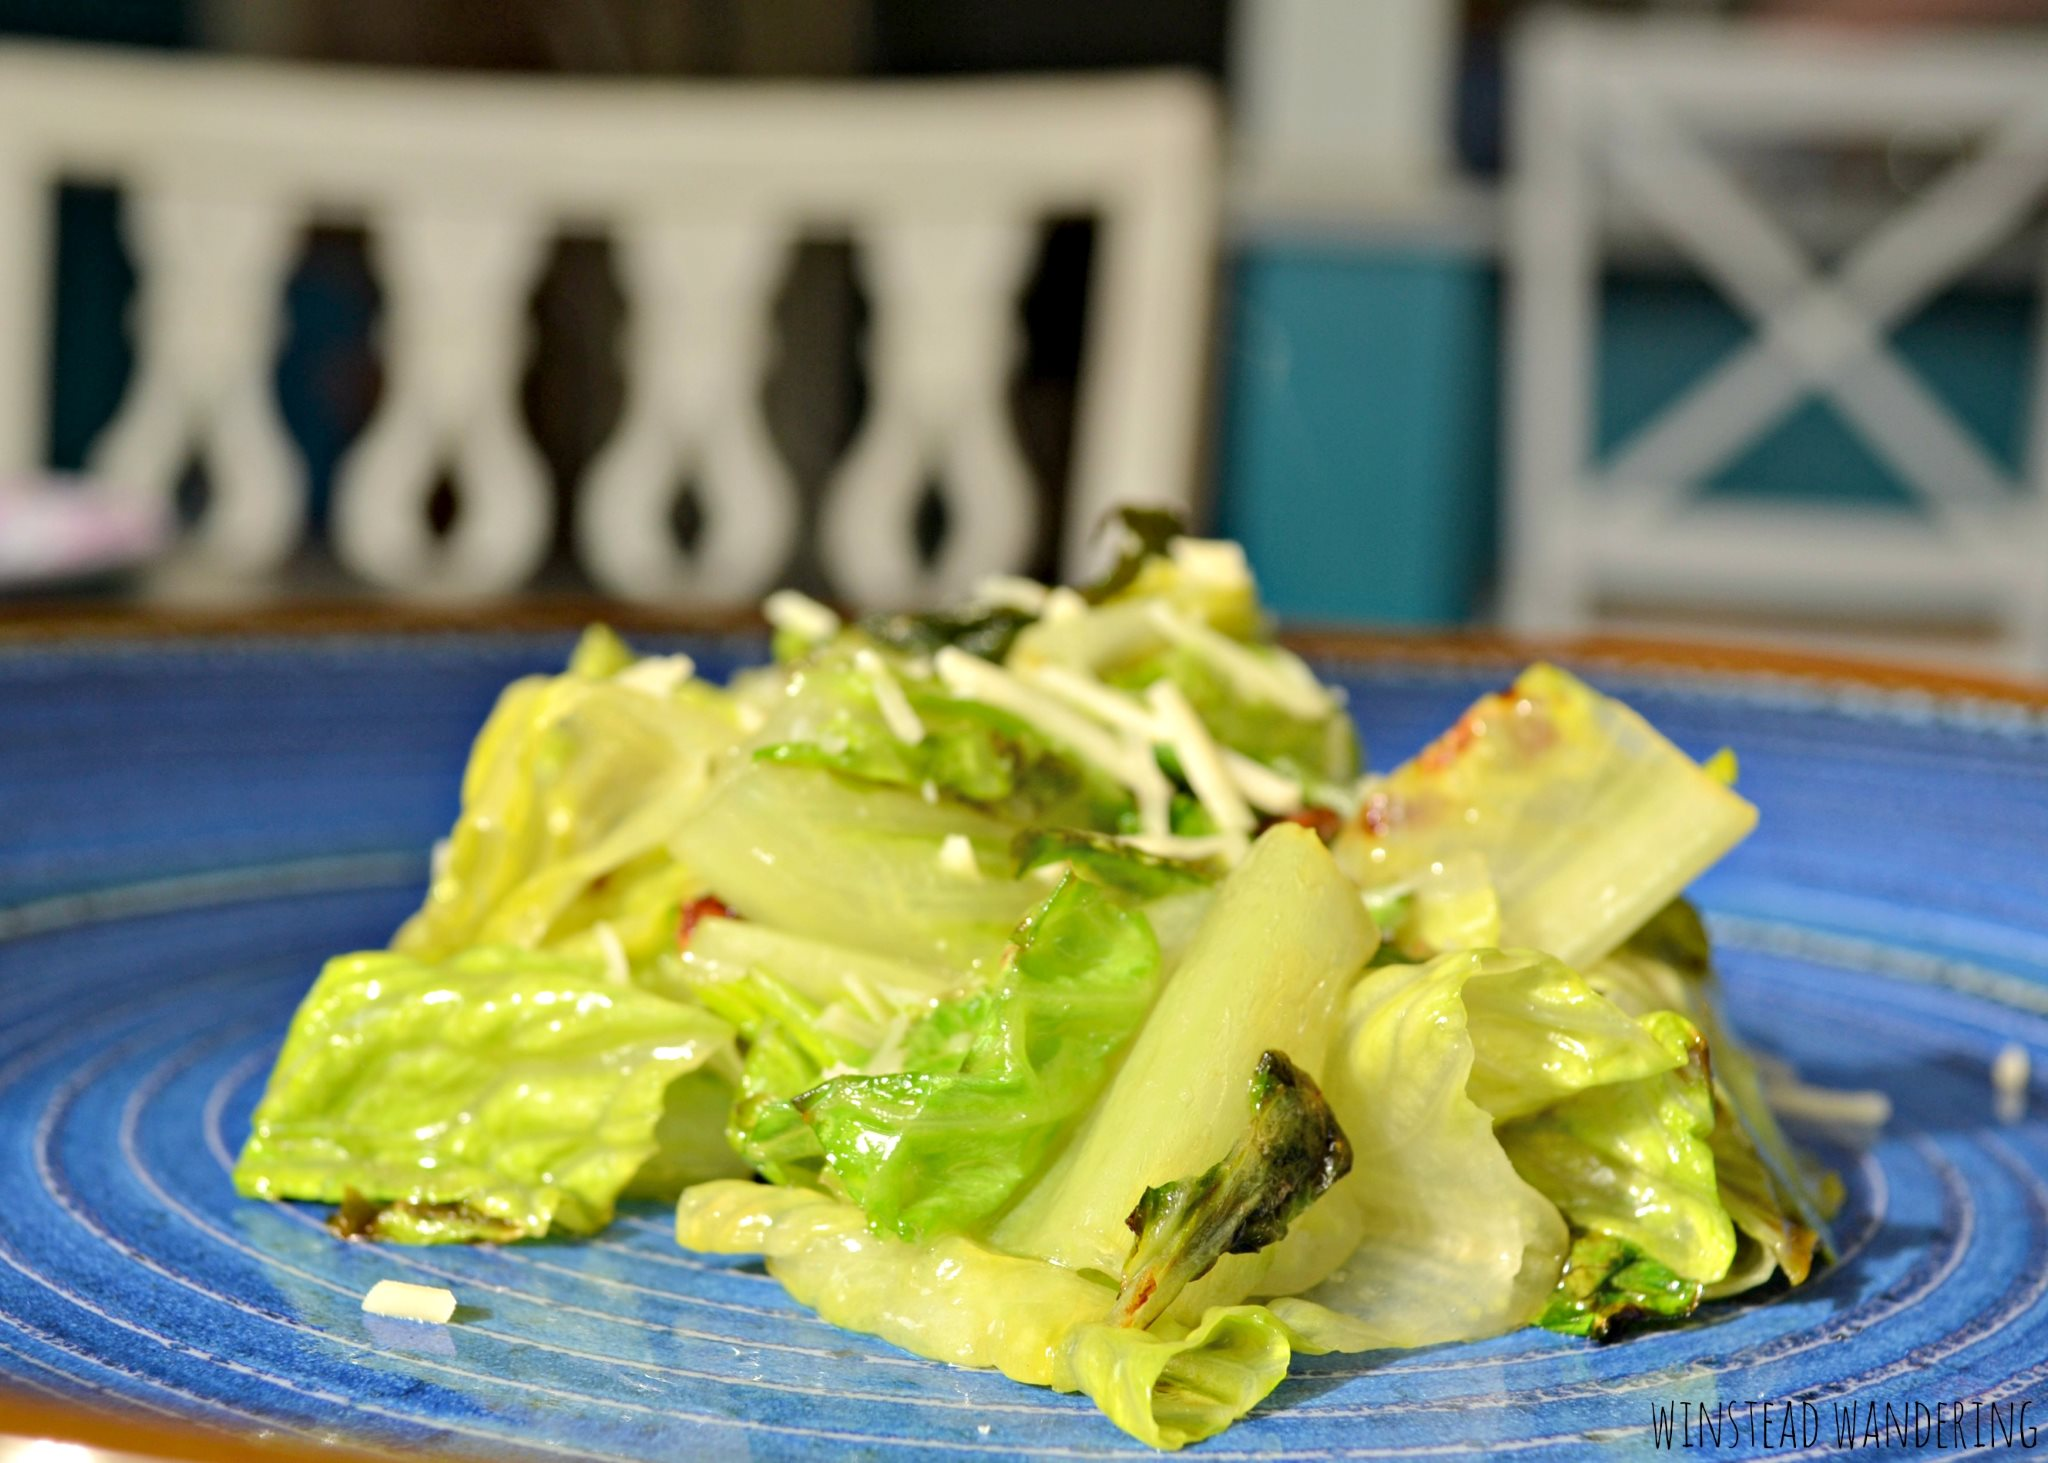 Pan-fried romaine lettuce is a fun and unique spin a boring salad. It's just as fast as gathering all the ingredients for a good salad, but it tastes so much better.